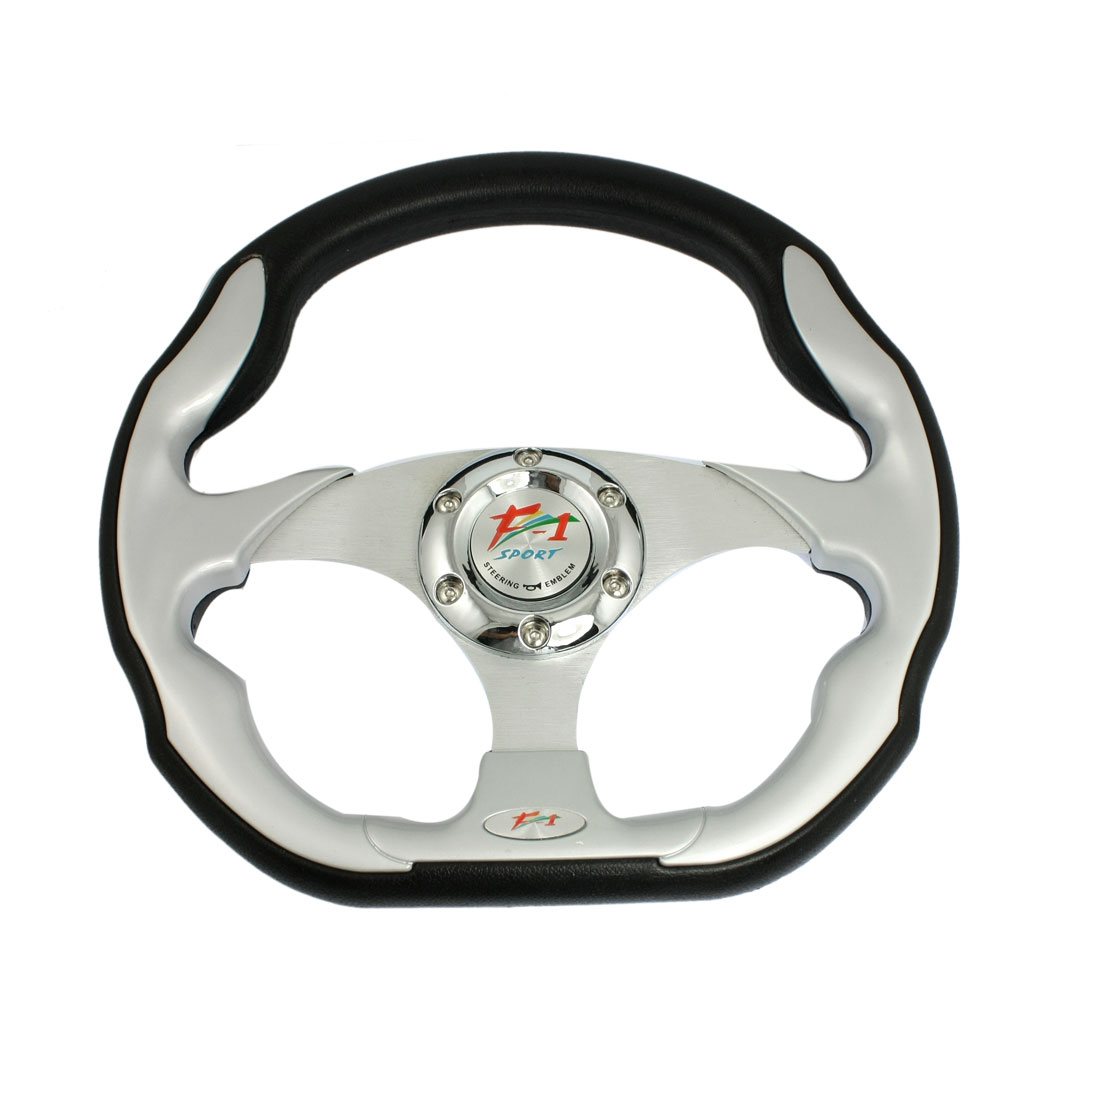 320mm Diameter Deep Dish Style 6 Bolt Racing Car Steering Wheel Black Gray